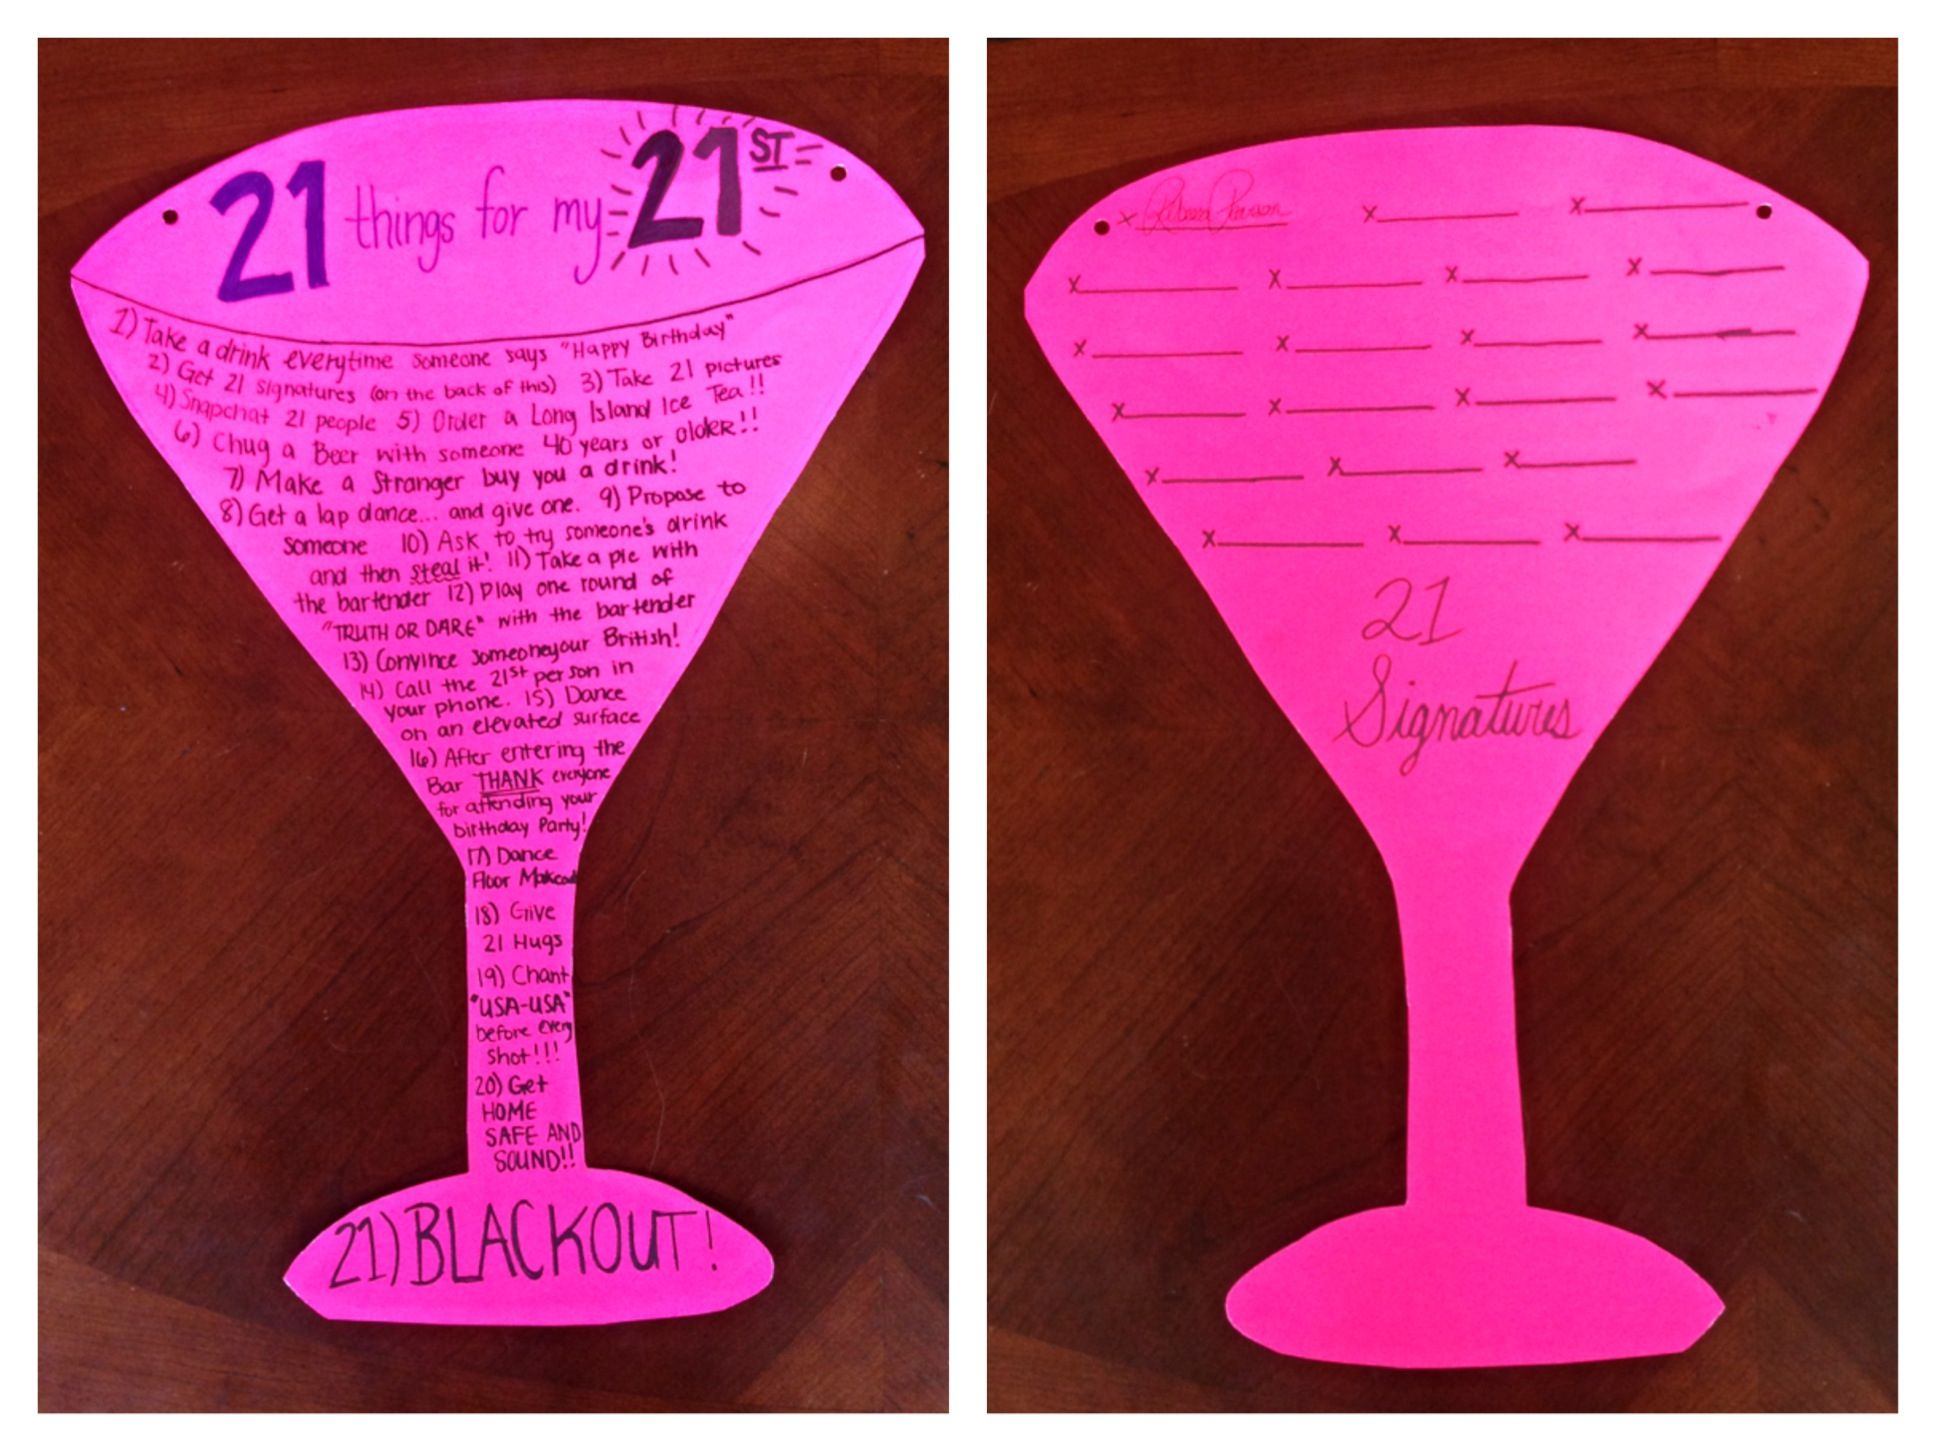 21 things poster 21st birthday Holiday Crafts Pinterest 21